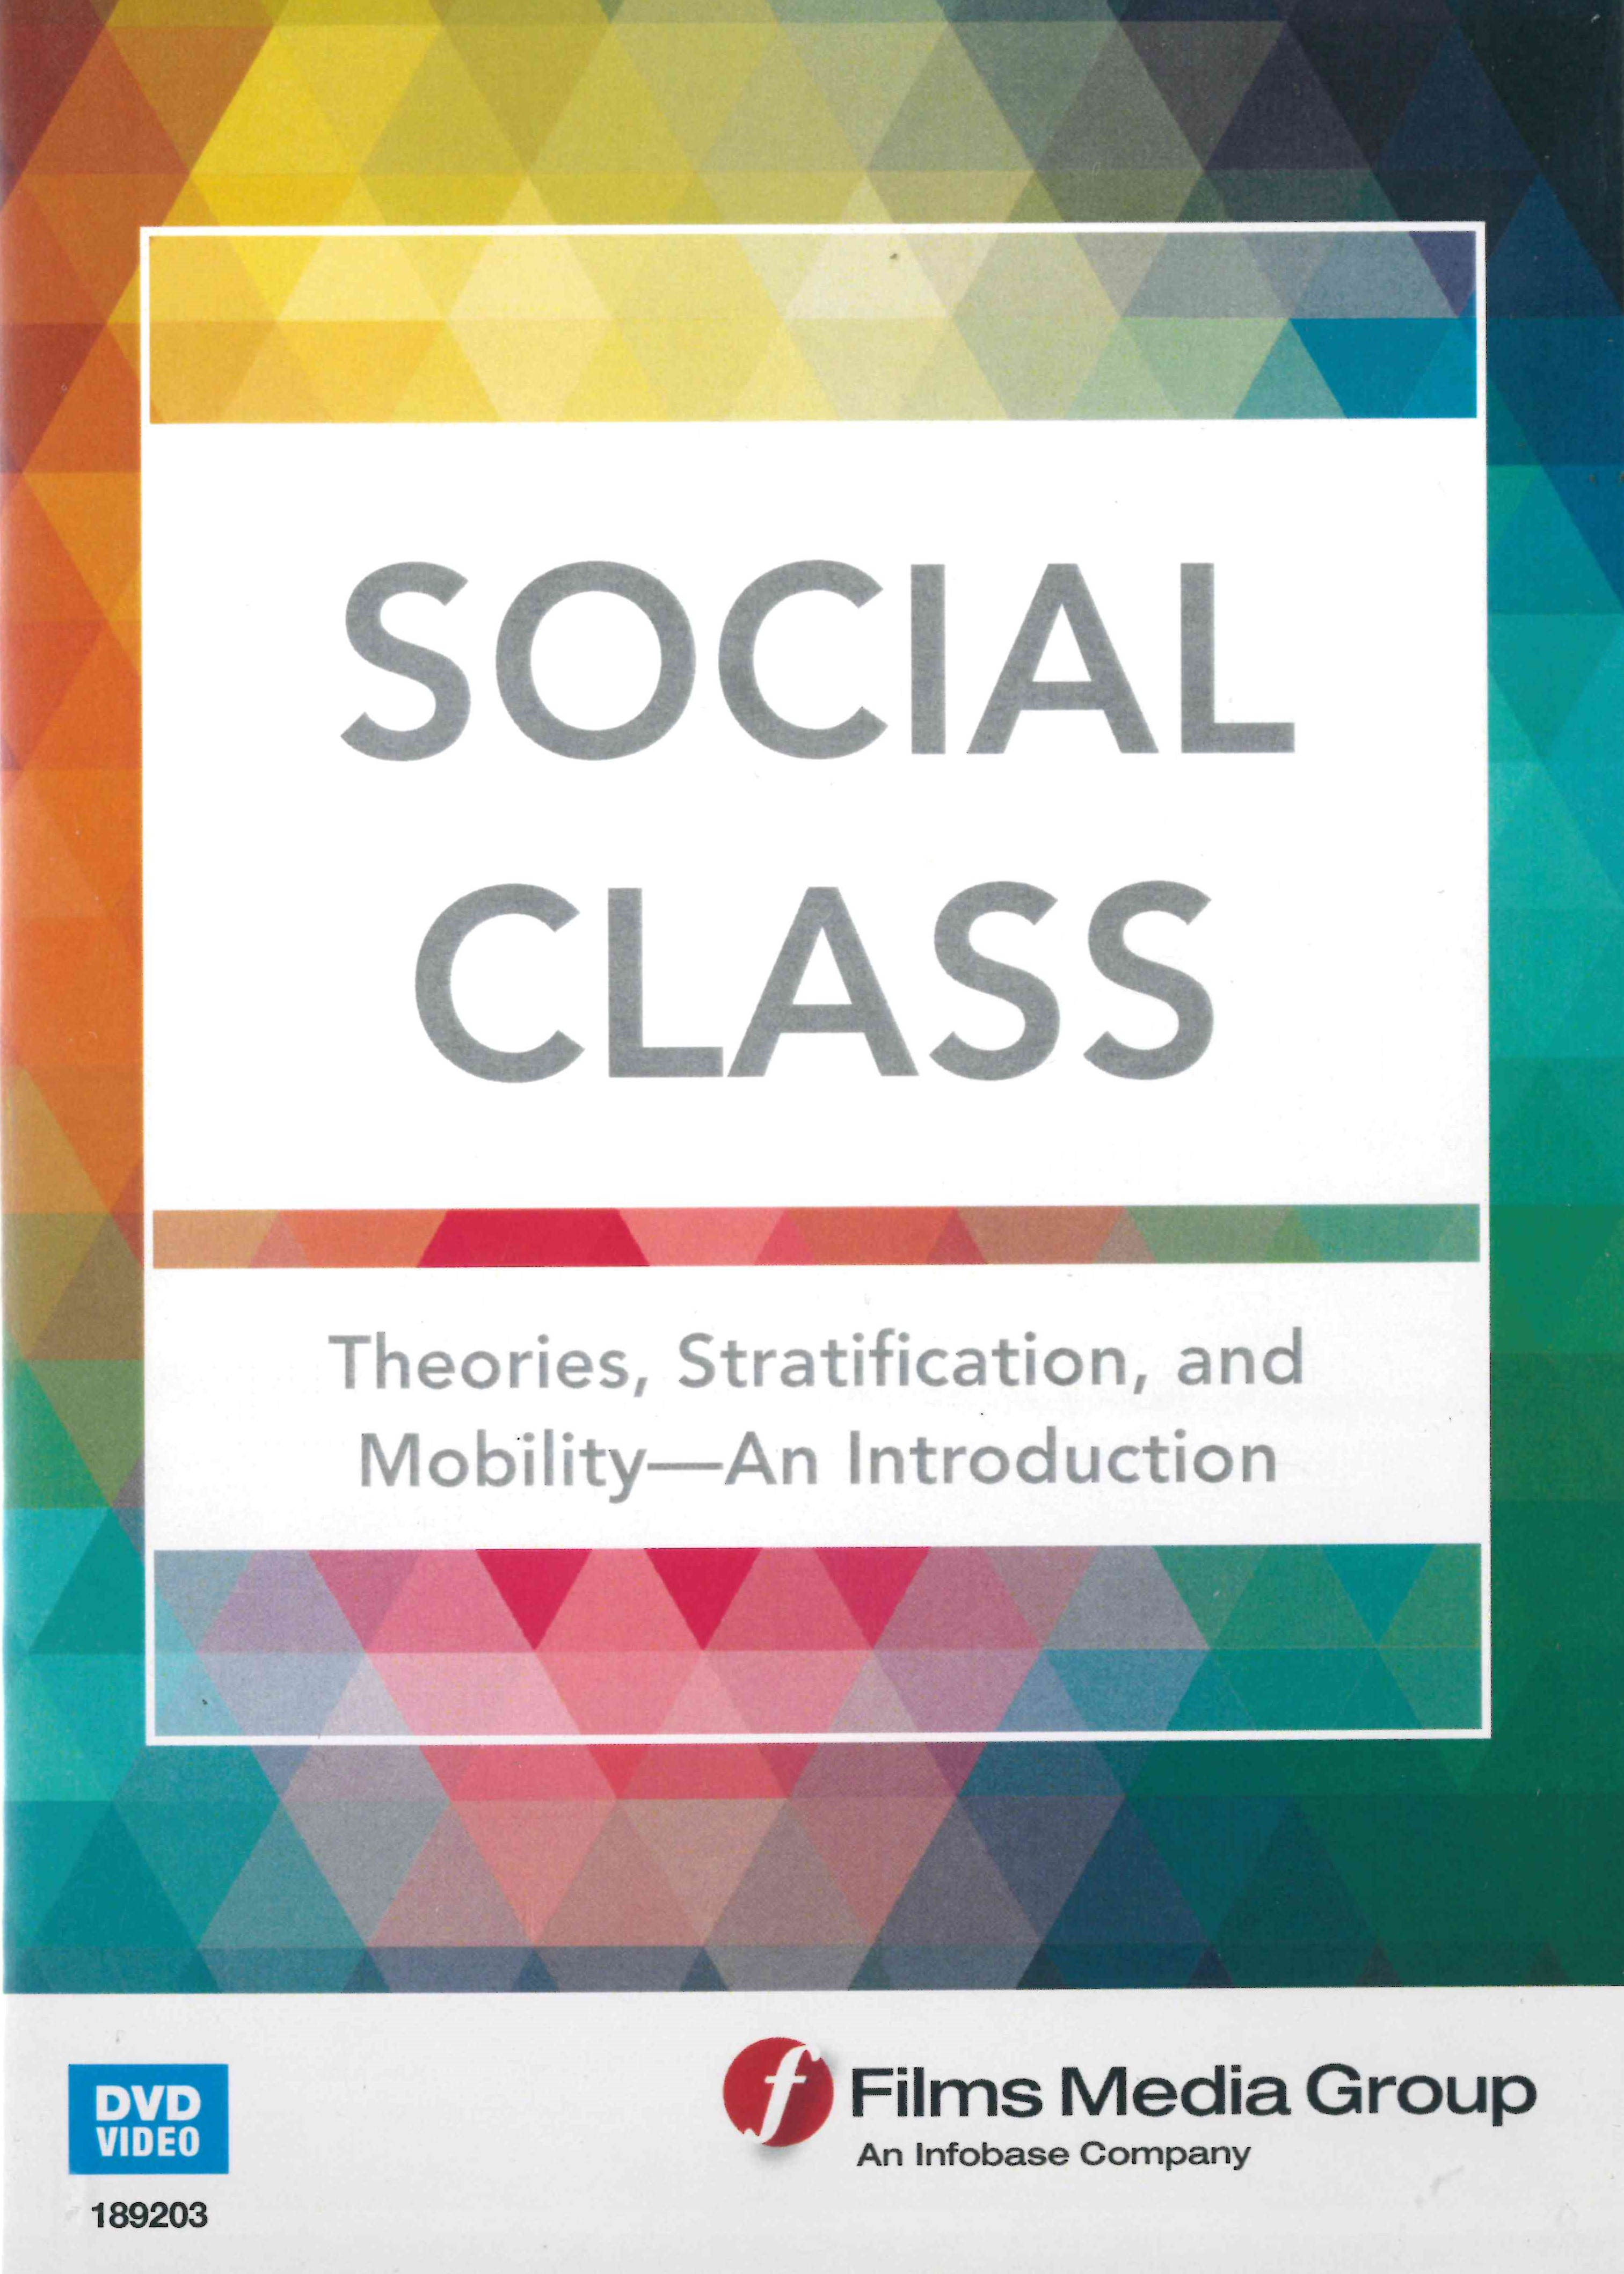 Social Class theories, stratification, and mobility : an Introduction